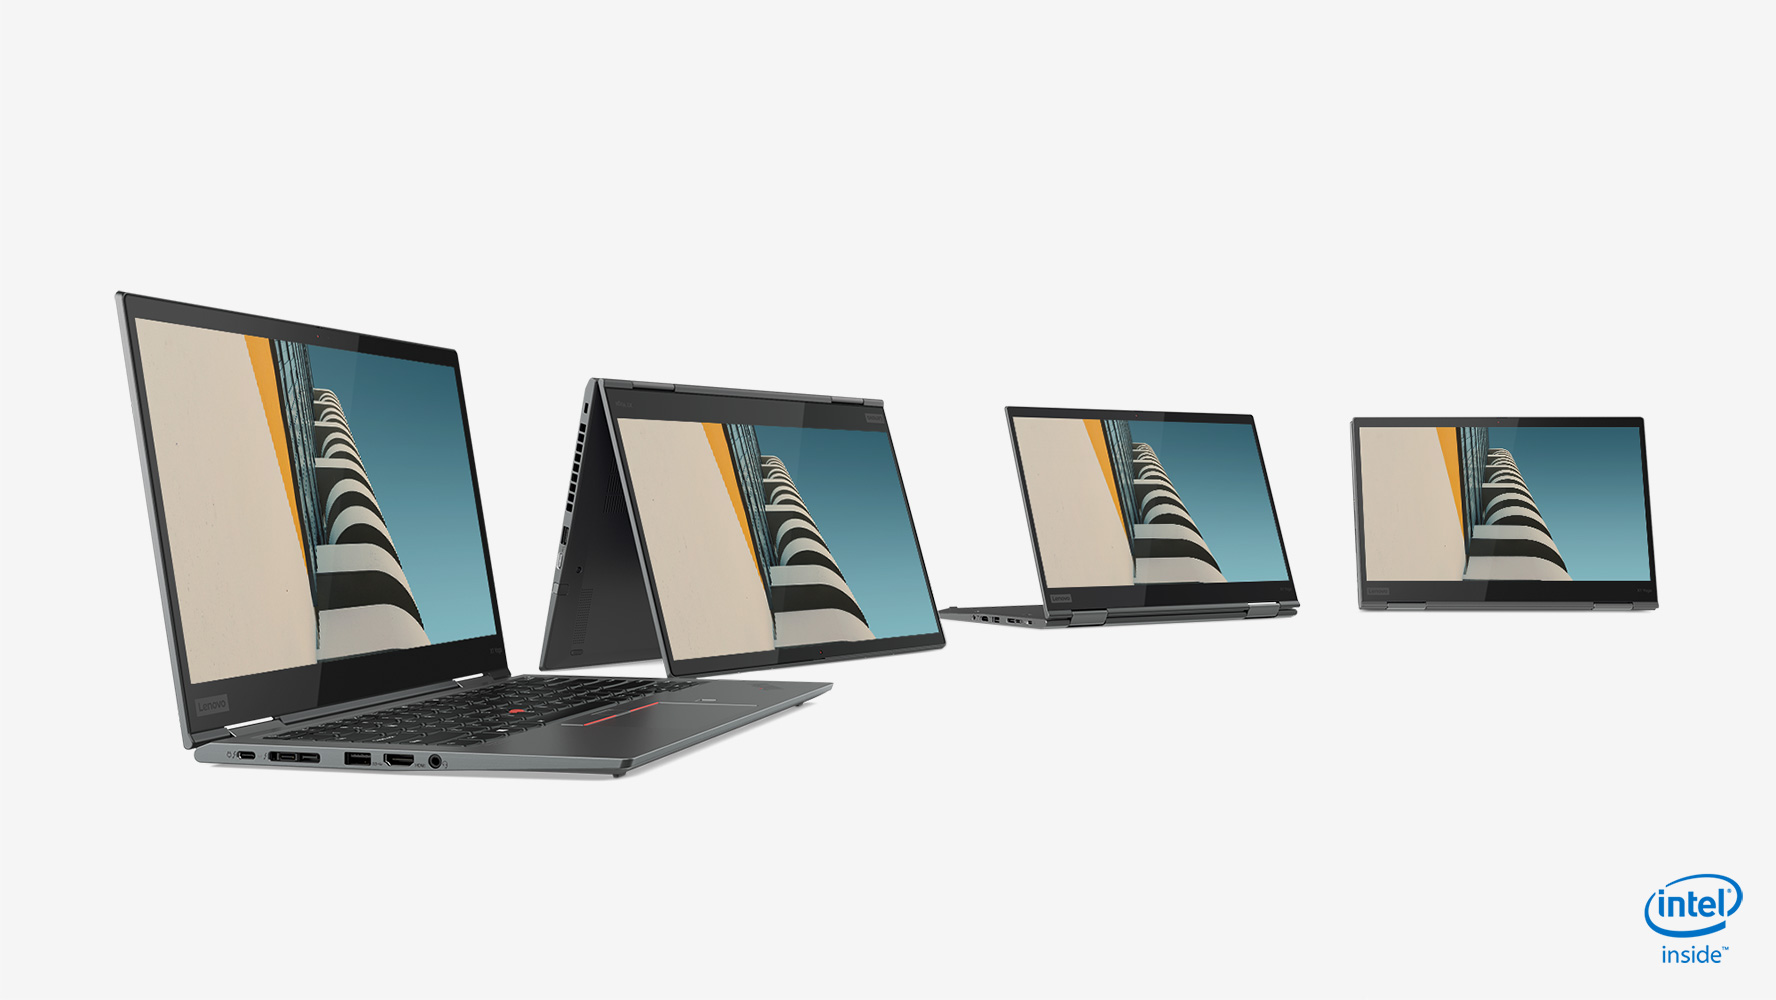 Lenovo's new laptops are thinner and lighter than ever